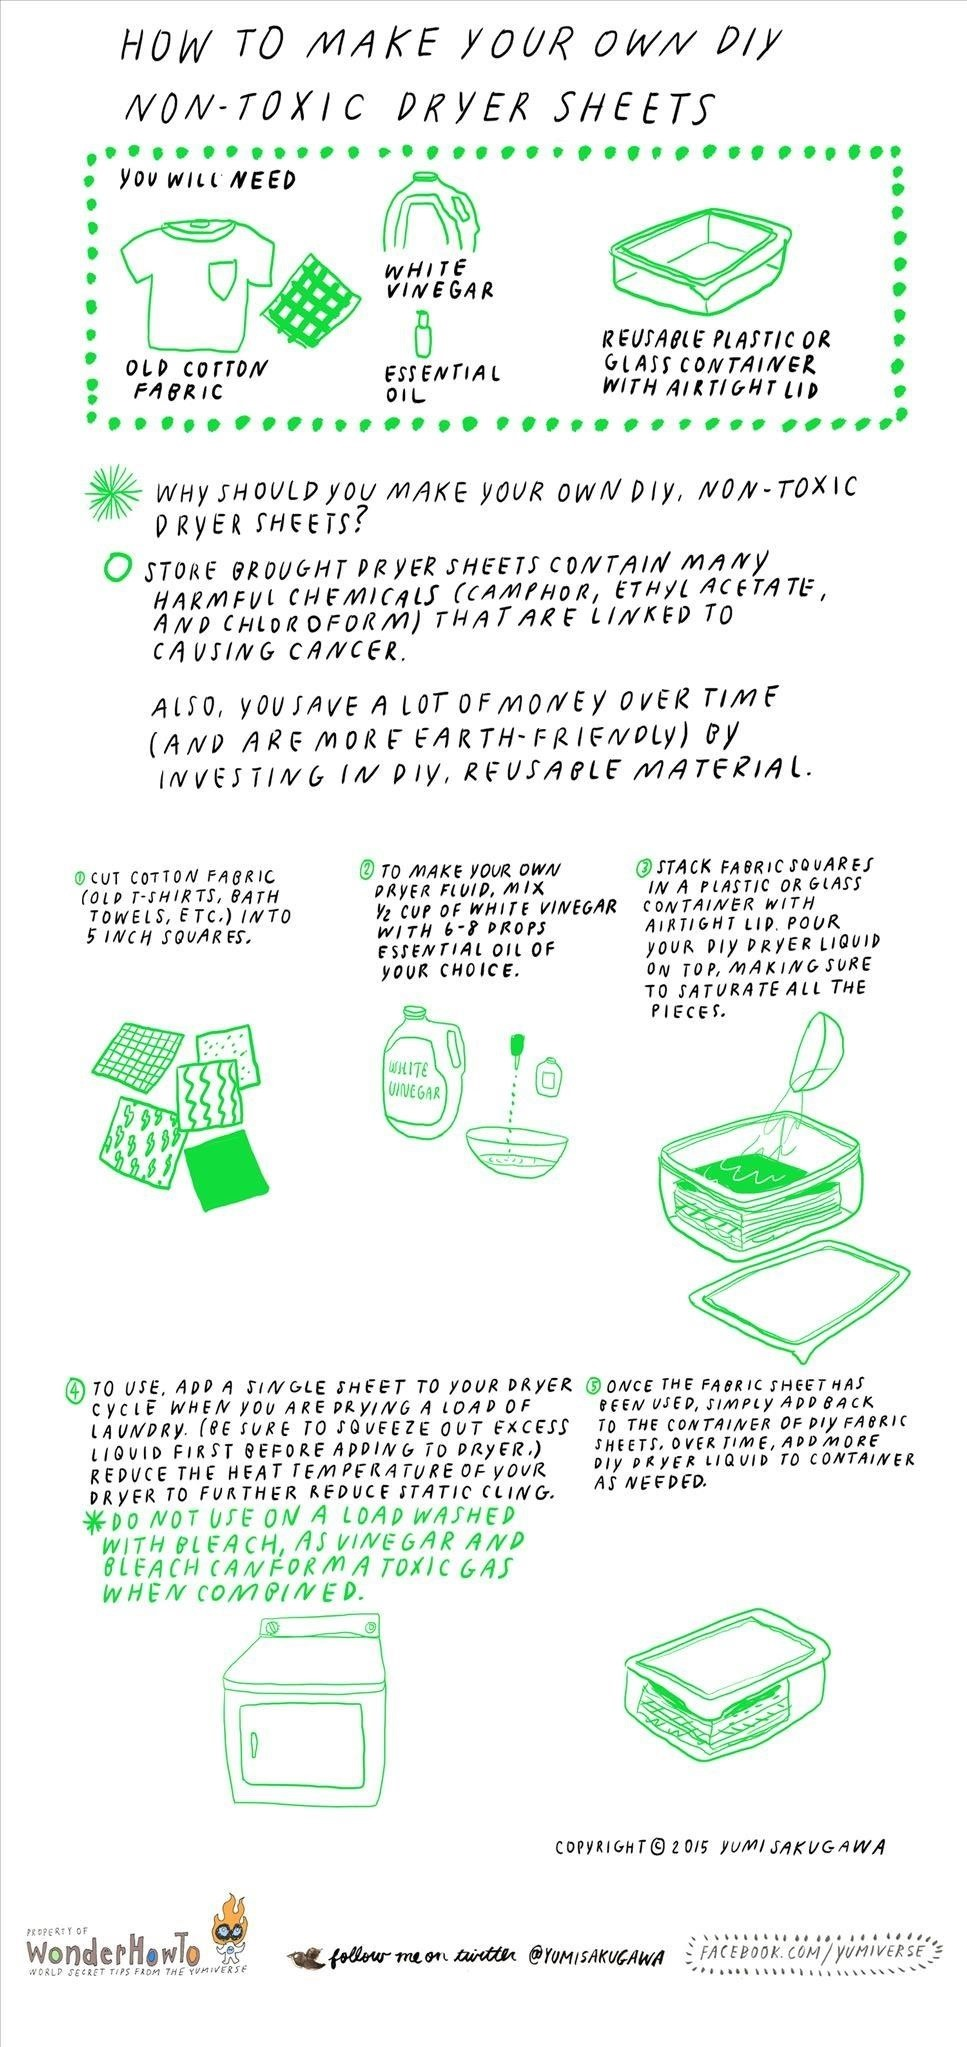 How to Make Your Own Non-Toxic Dryer Sheets